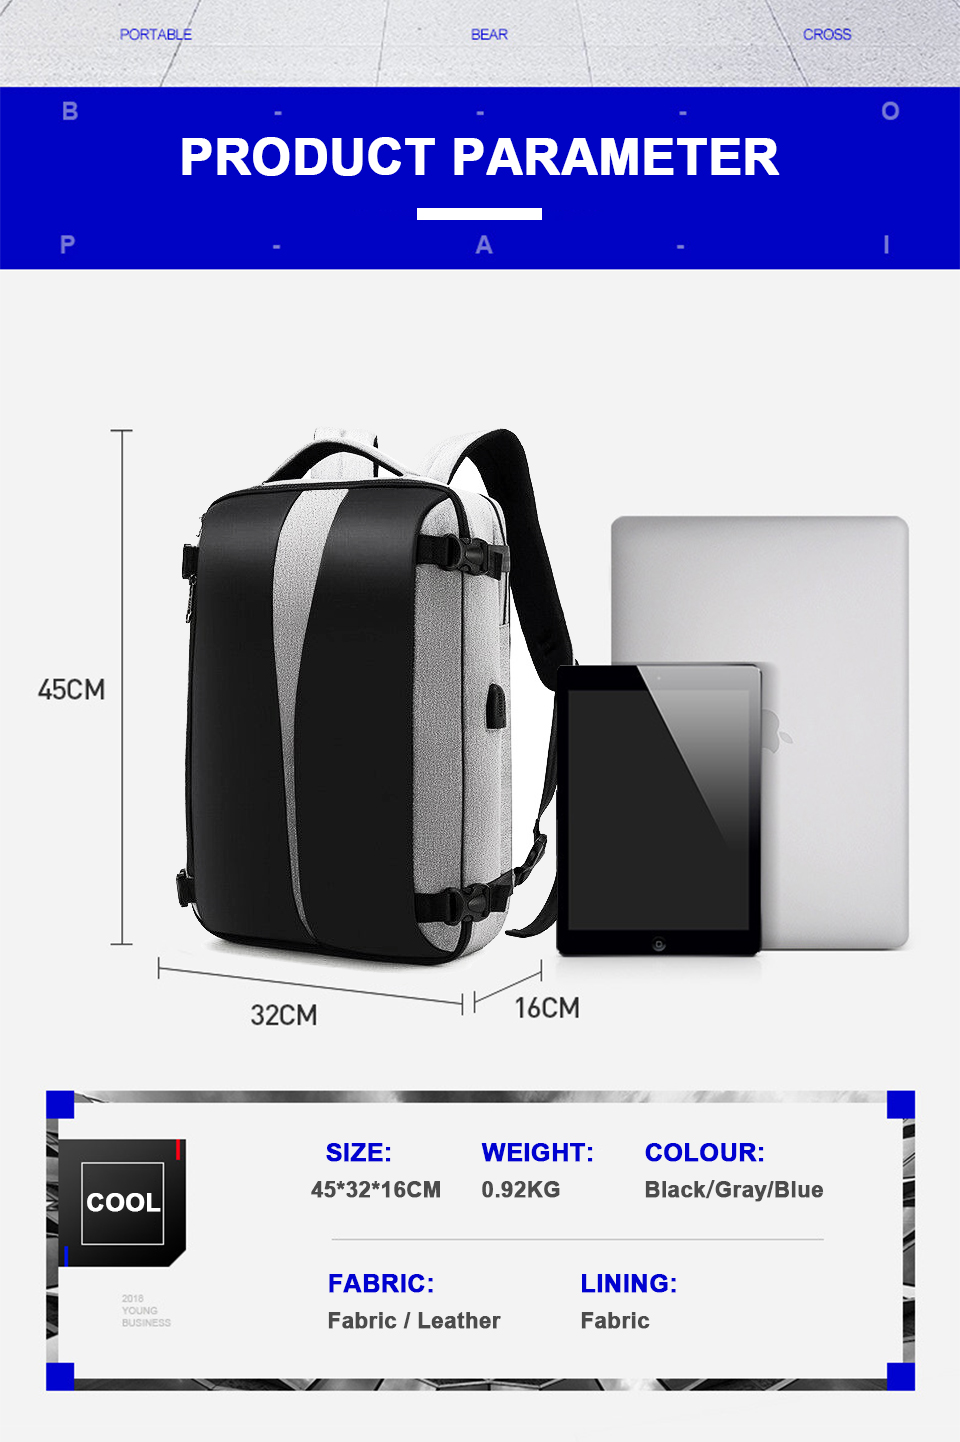 Men Backpack Anti Theft Travel Bagpack Laptop 15.6 Inch Notebook Waterproof Bags USB Charging Male Business Fashion Unisex Bag (12)